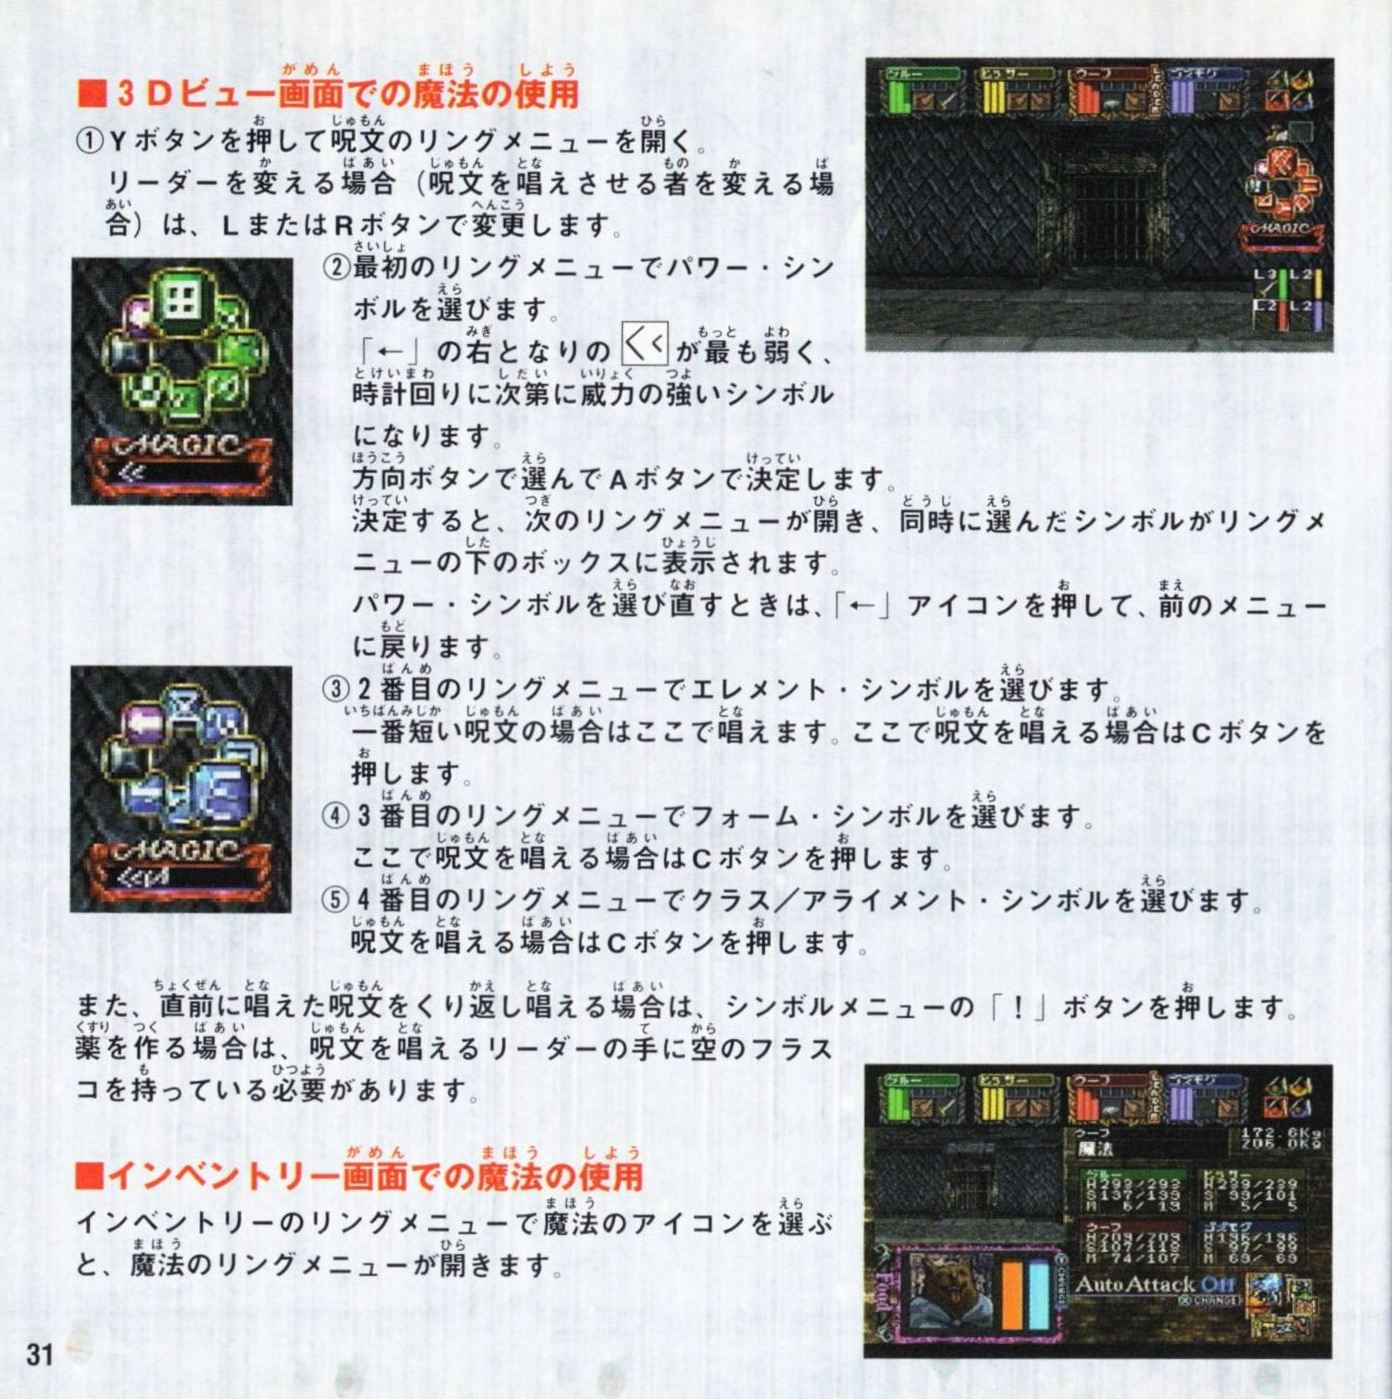 Game - Dungeon Master Nexus - JP - Sega Saturn - Booklet - Page 032 - Scan